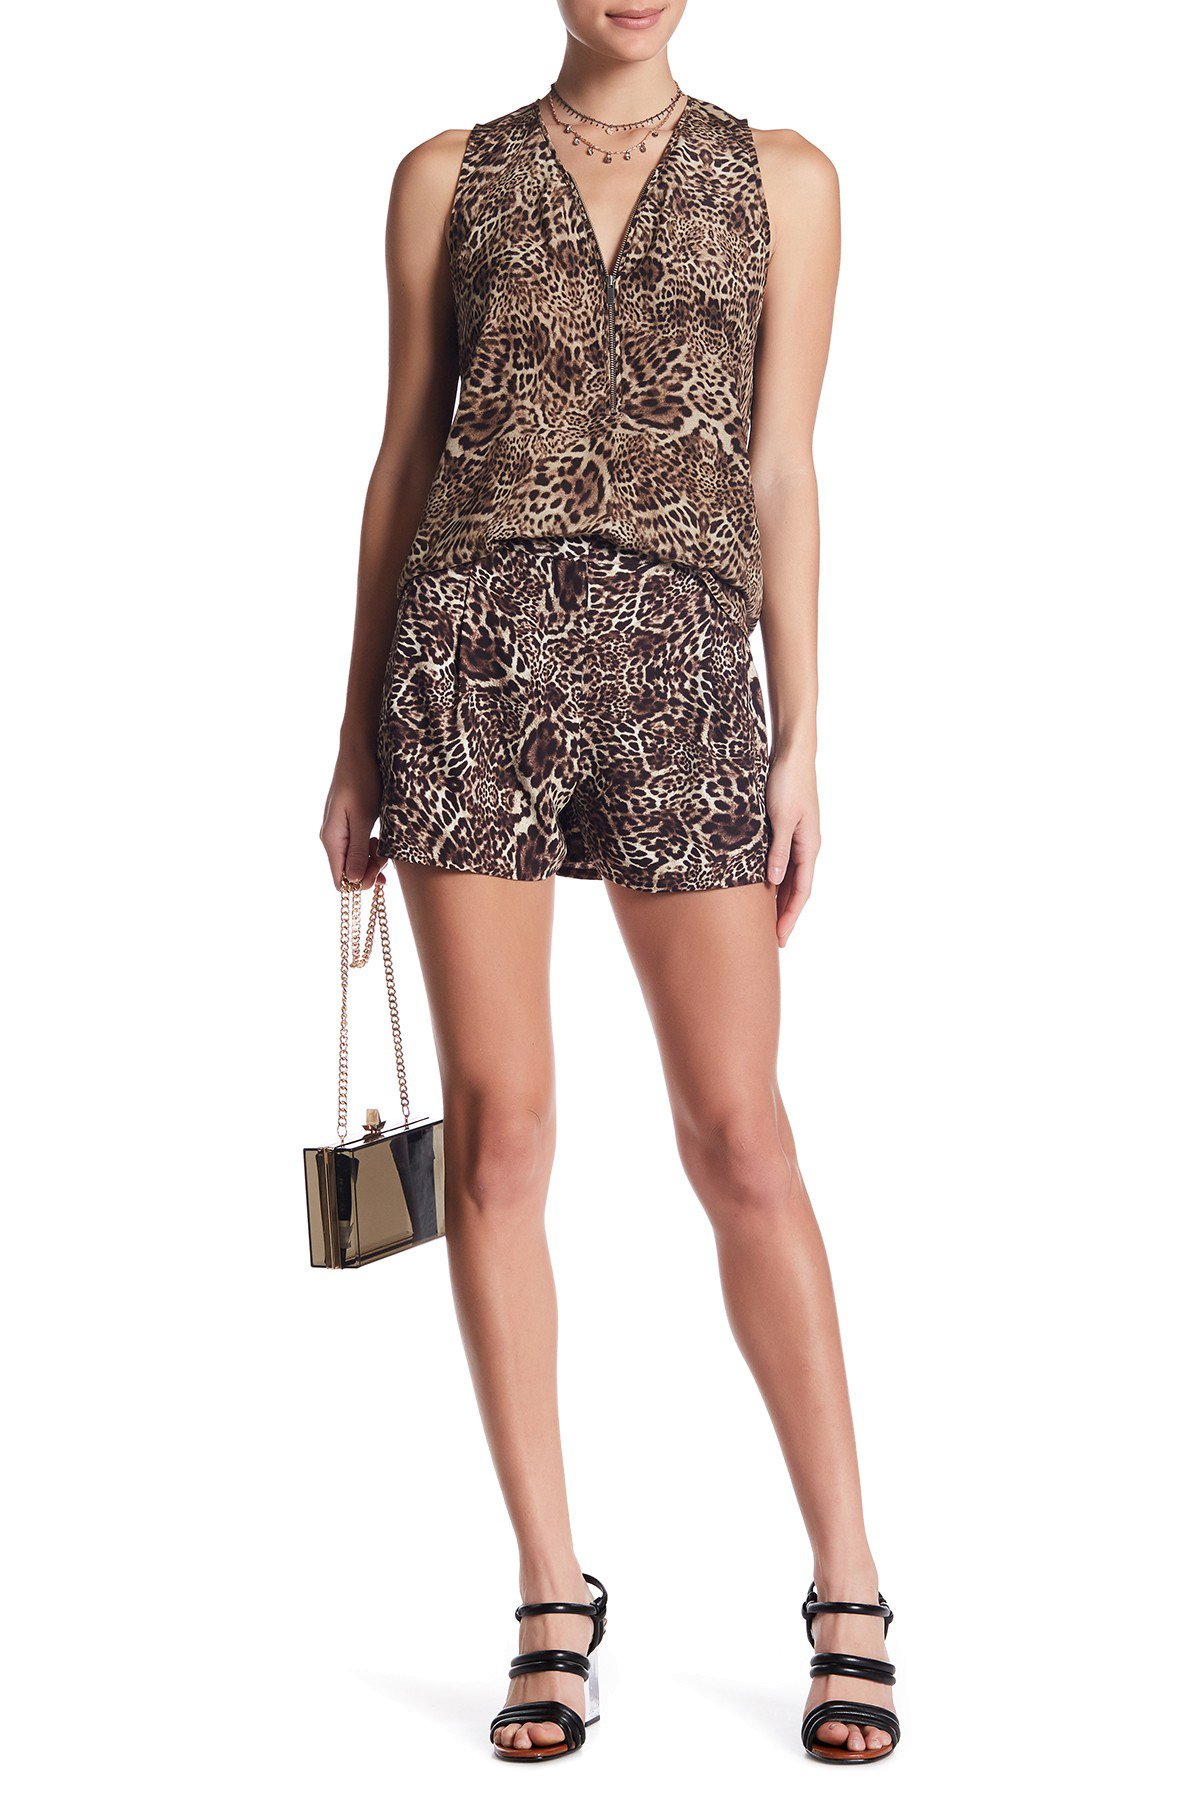 The Kooples Printed Short For Women In Leopard Print, XSmall